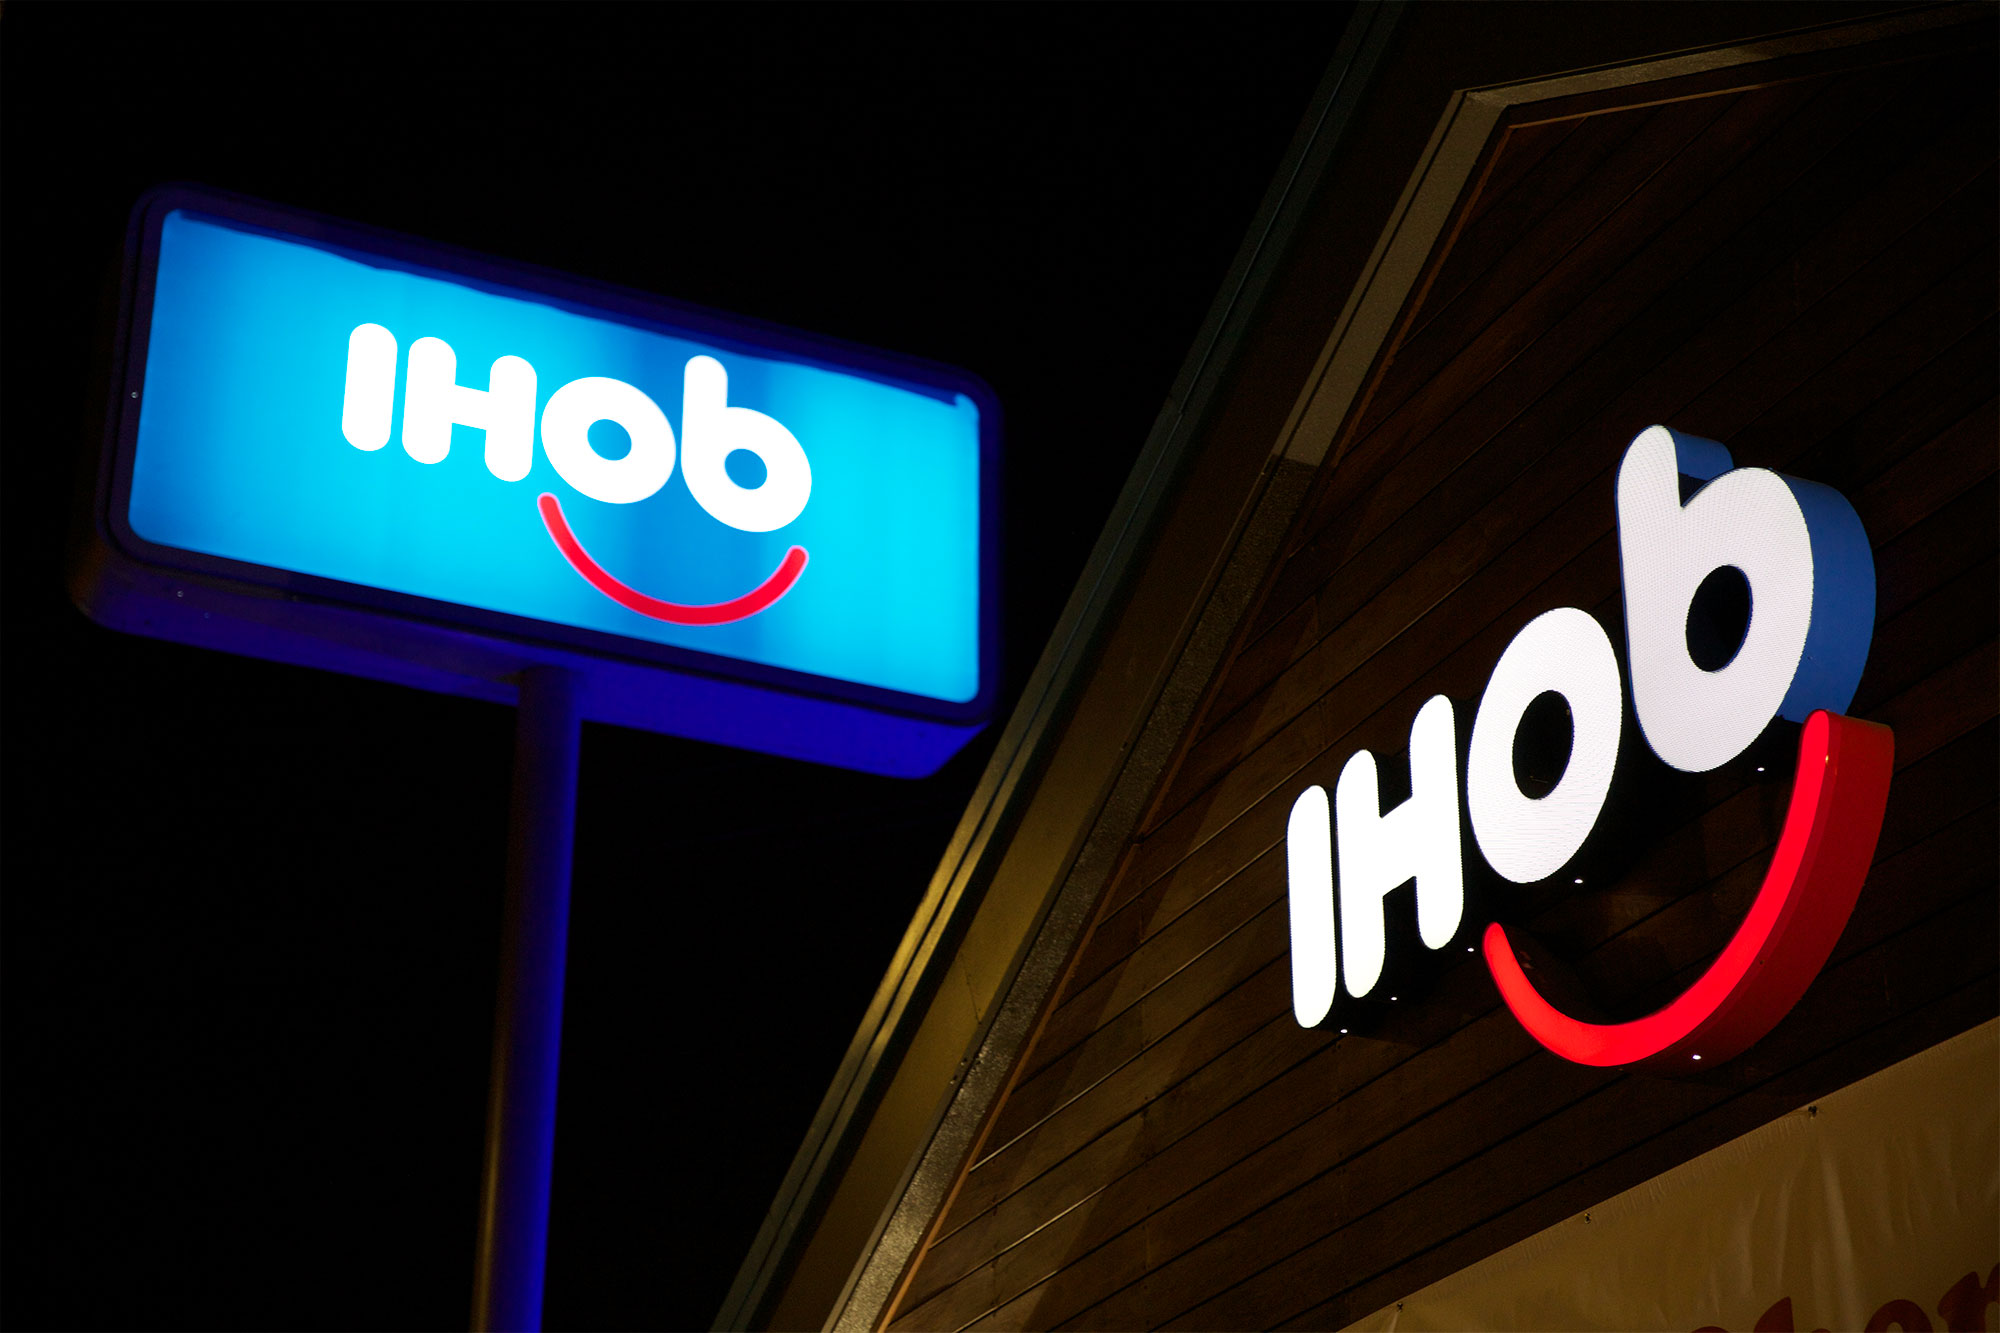 IHOP Changes Its Name To IHOb To Prove They Are 'Serious' About a New Menu Item ihop-1